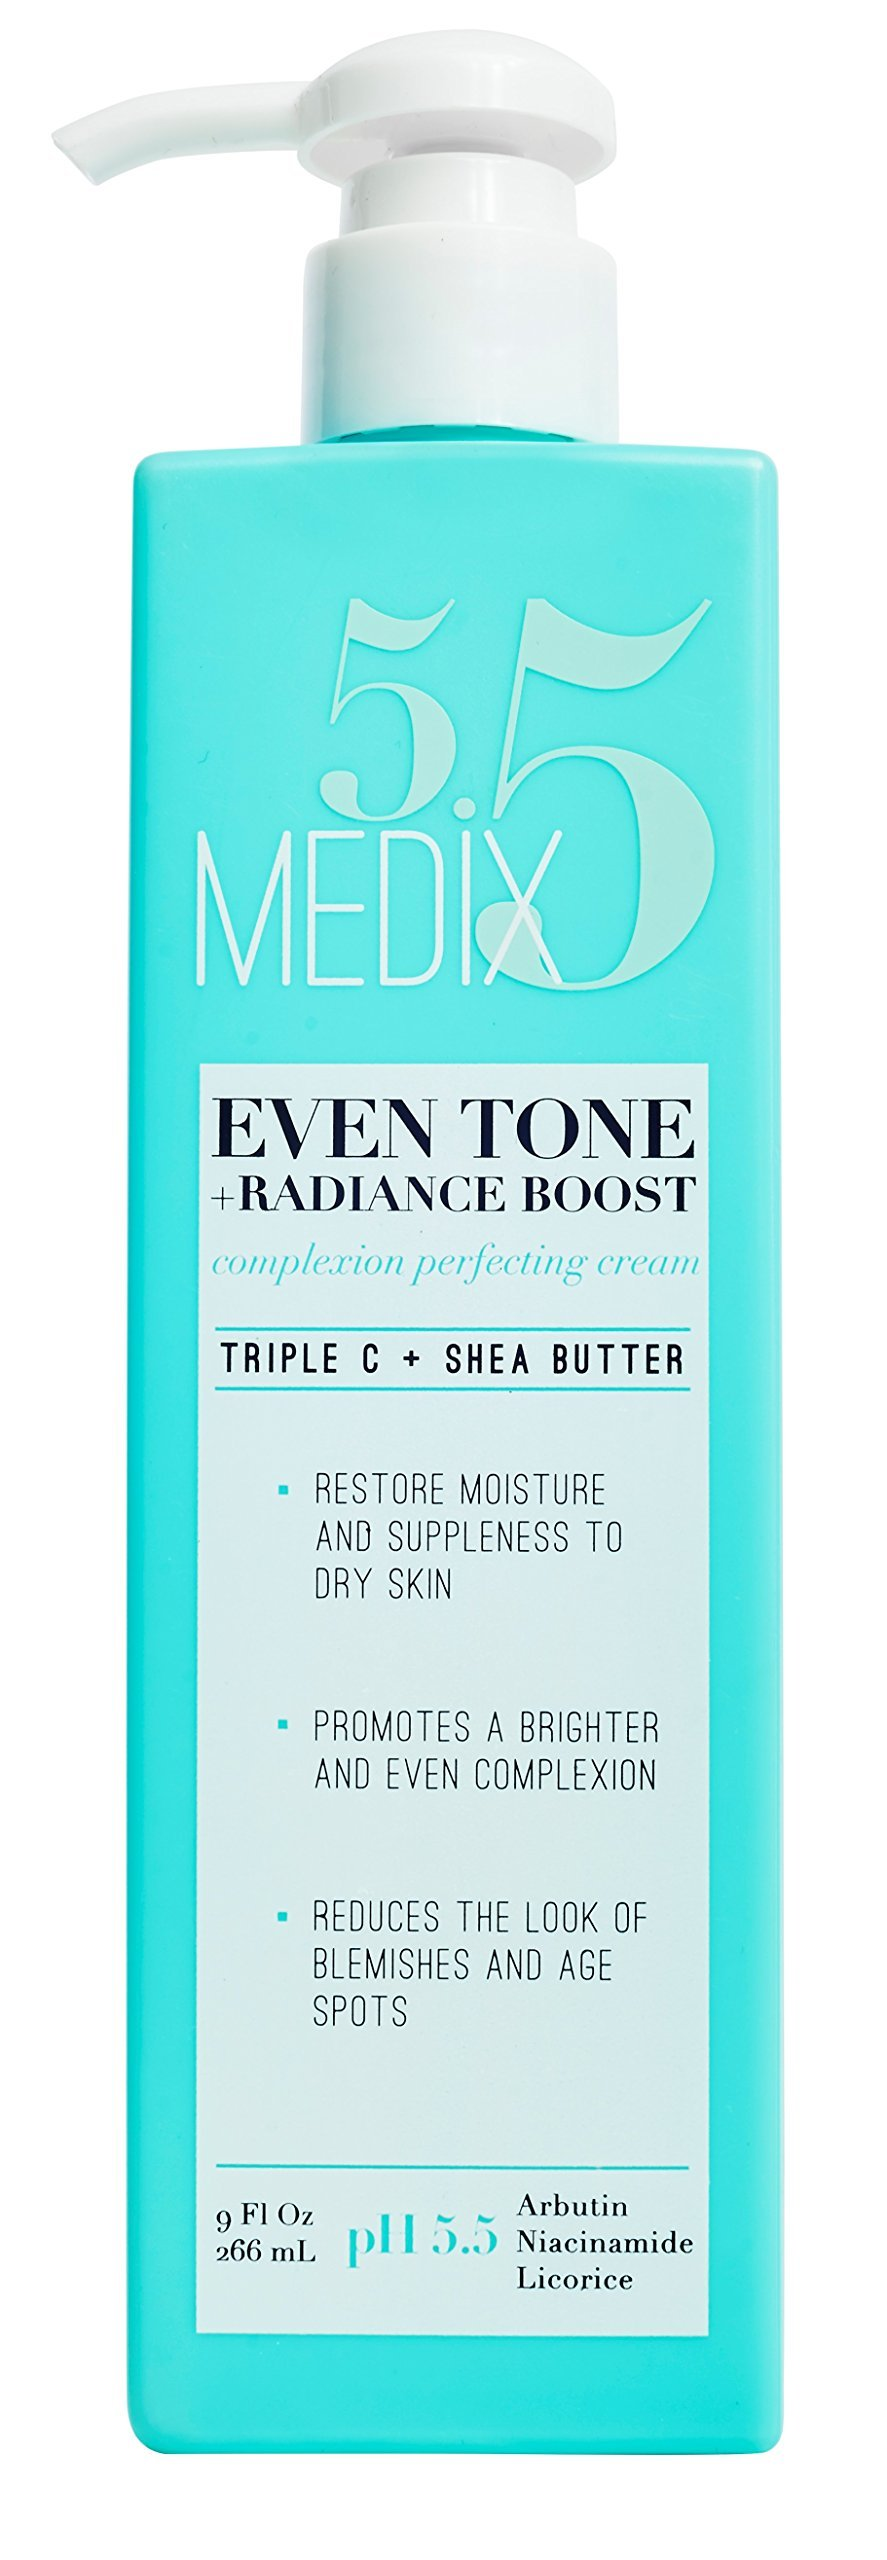 Medix 5.5 Even Tone Cream for body and face. Radiance Boost Complexion Perfecting Cream with Niacinamide, Arbutin, and Licorice. Large 9oz bottle with a pump.